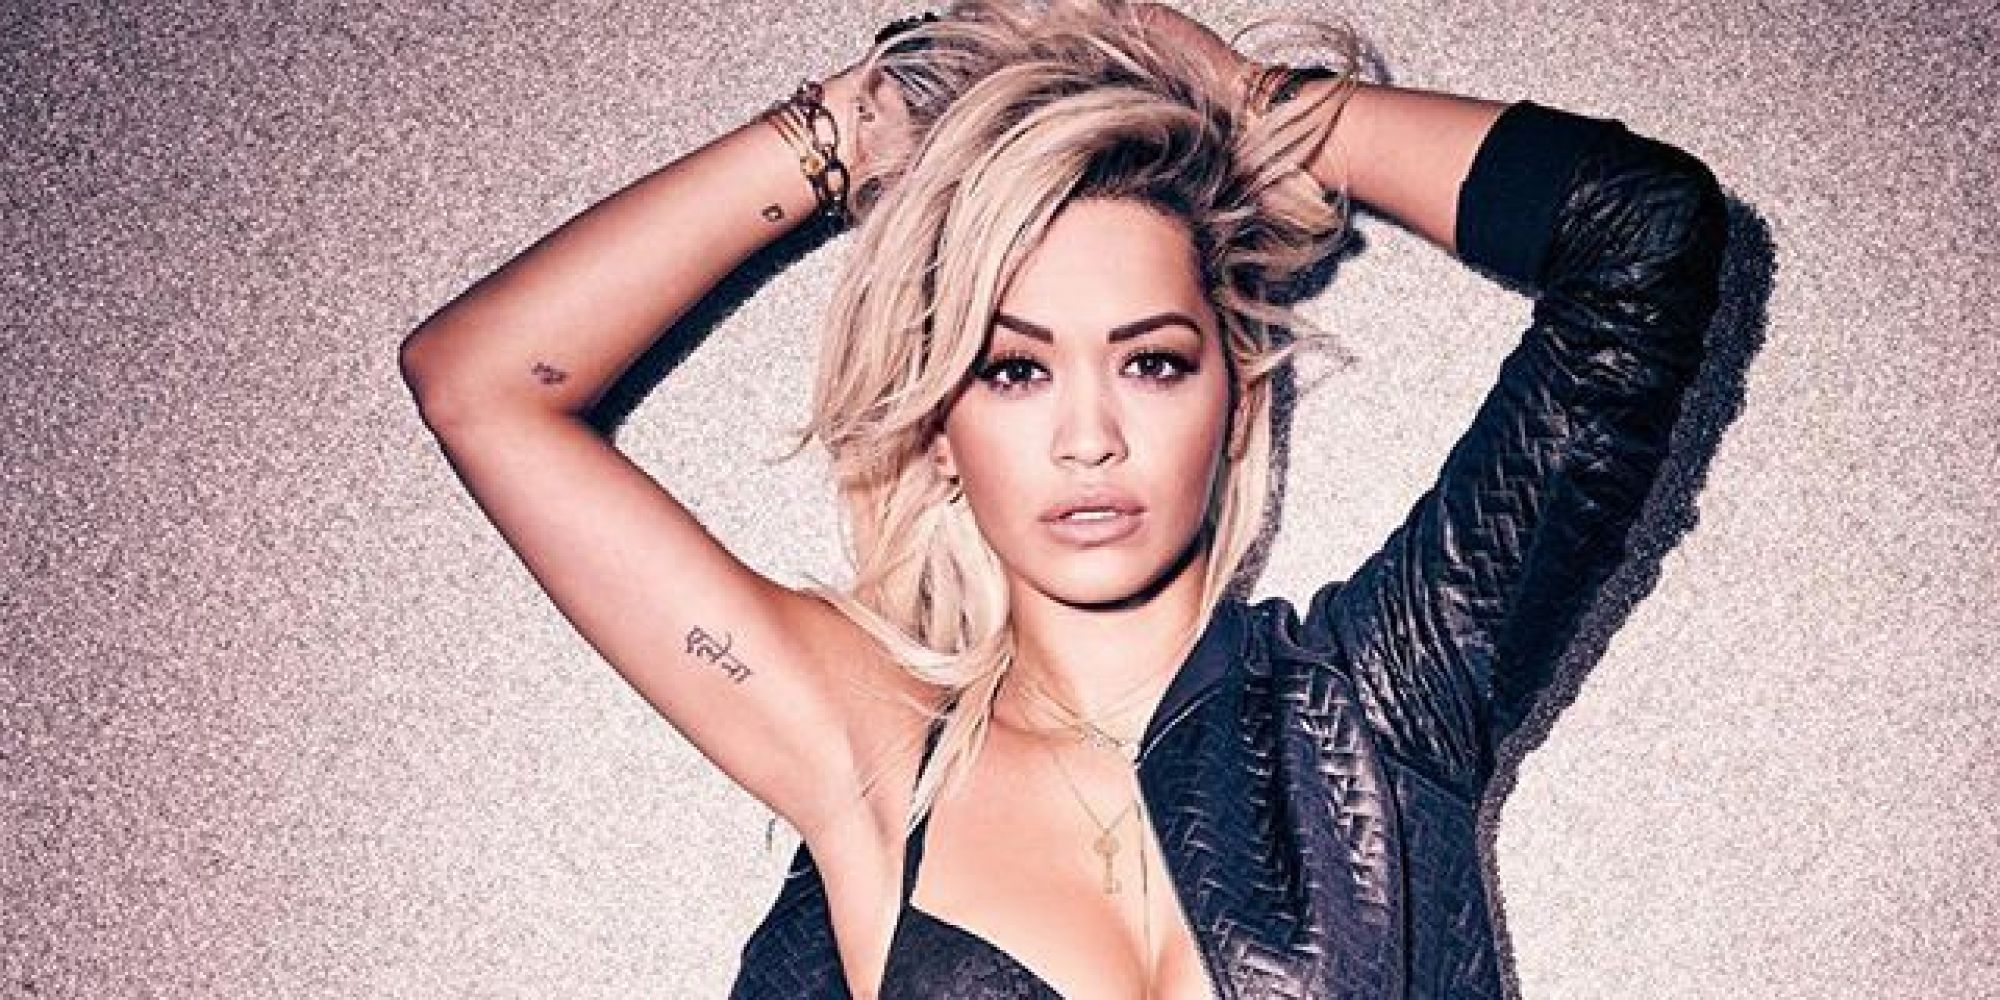 Rita Ora Full hd wallpapers